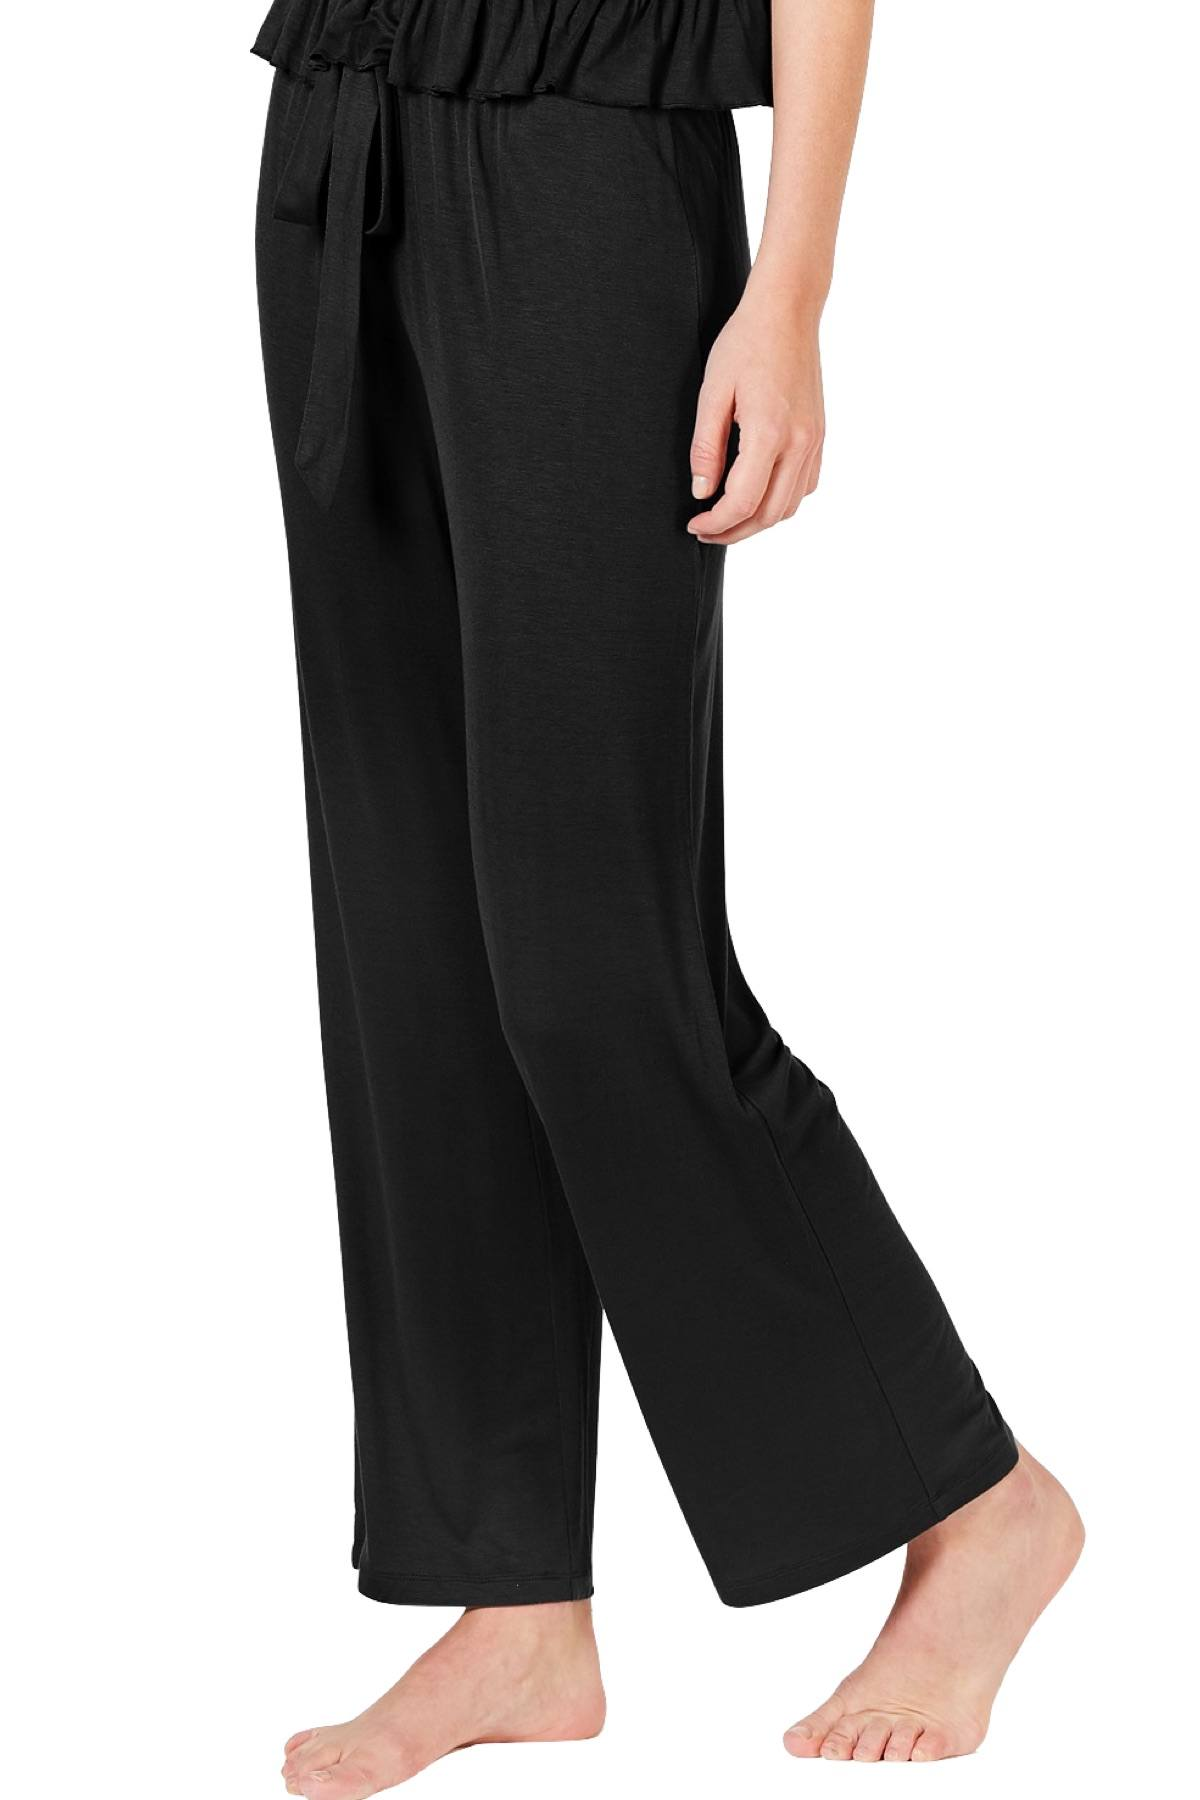 INC International Concepts Ultra Soft Knit Ruching Lounge Pant in Deep Black